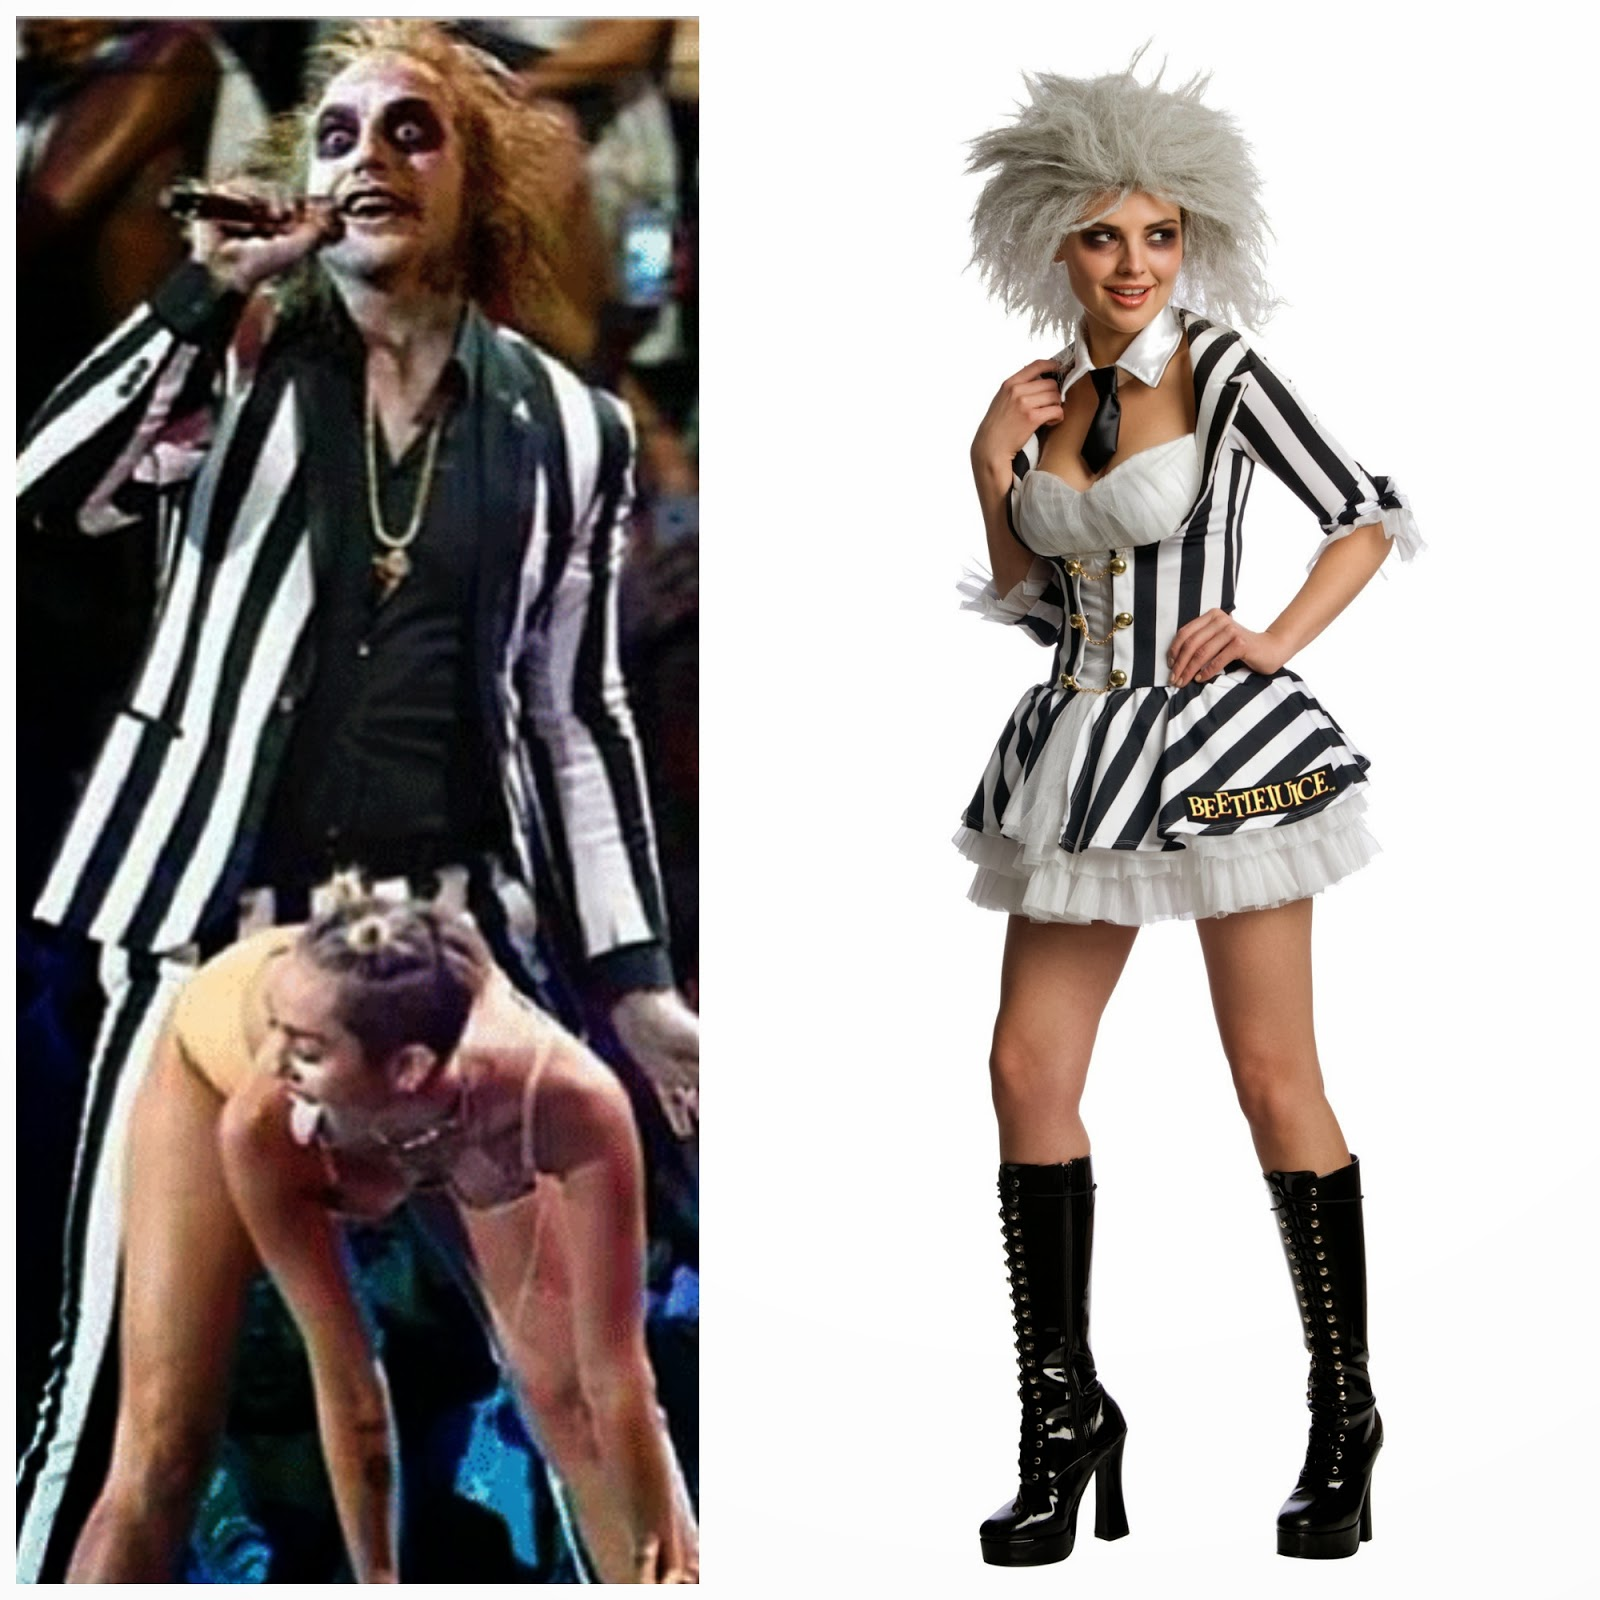 Miley Cyrus & Robin Thicke, Miley Cyrus & Robin Thicke Beetlejuice, Hannah Montanna, Female Beetlejuice Outfit, Female Fancy Dress outfit